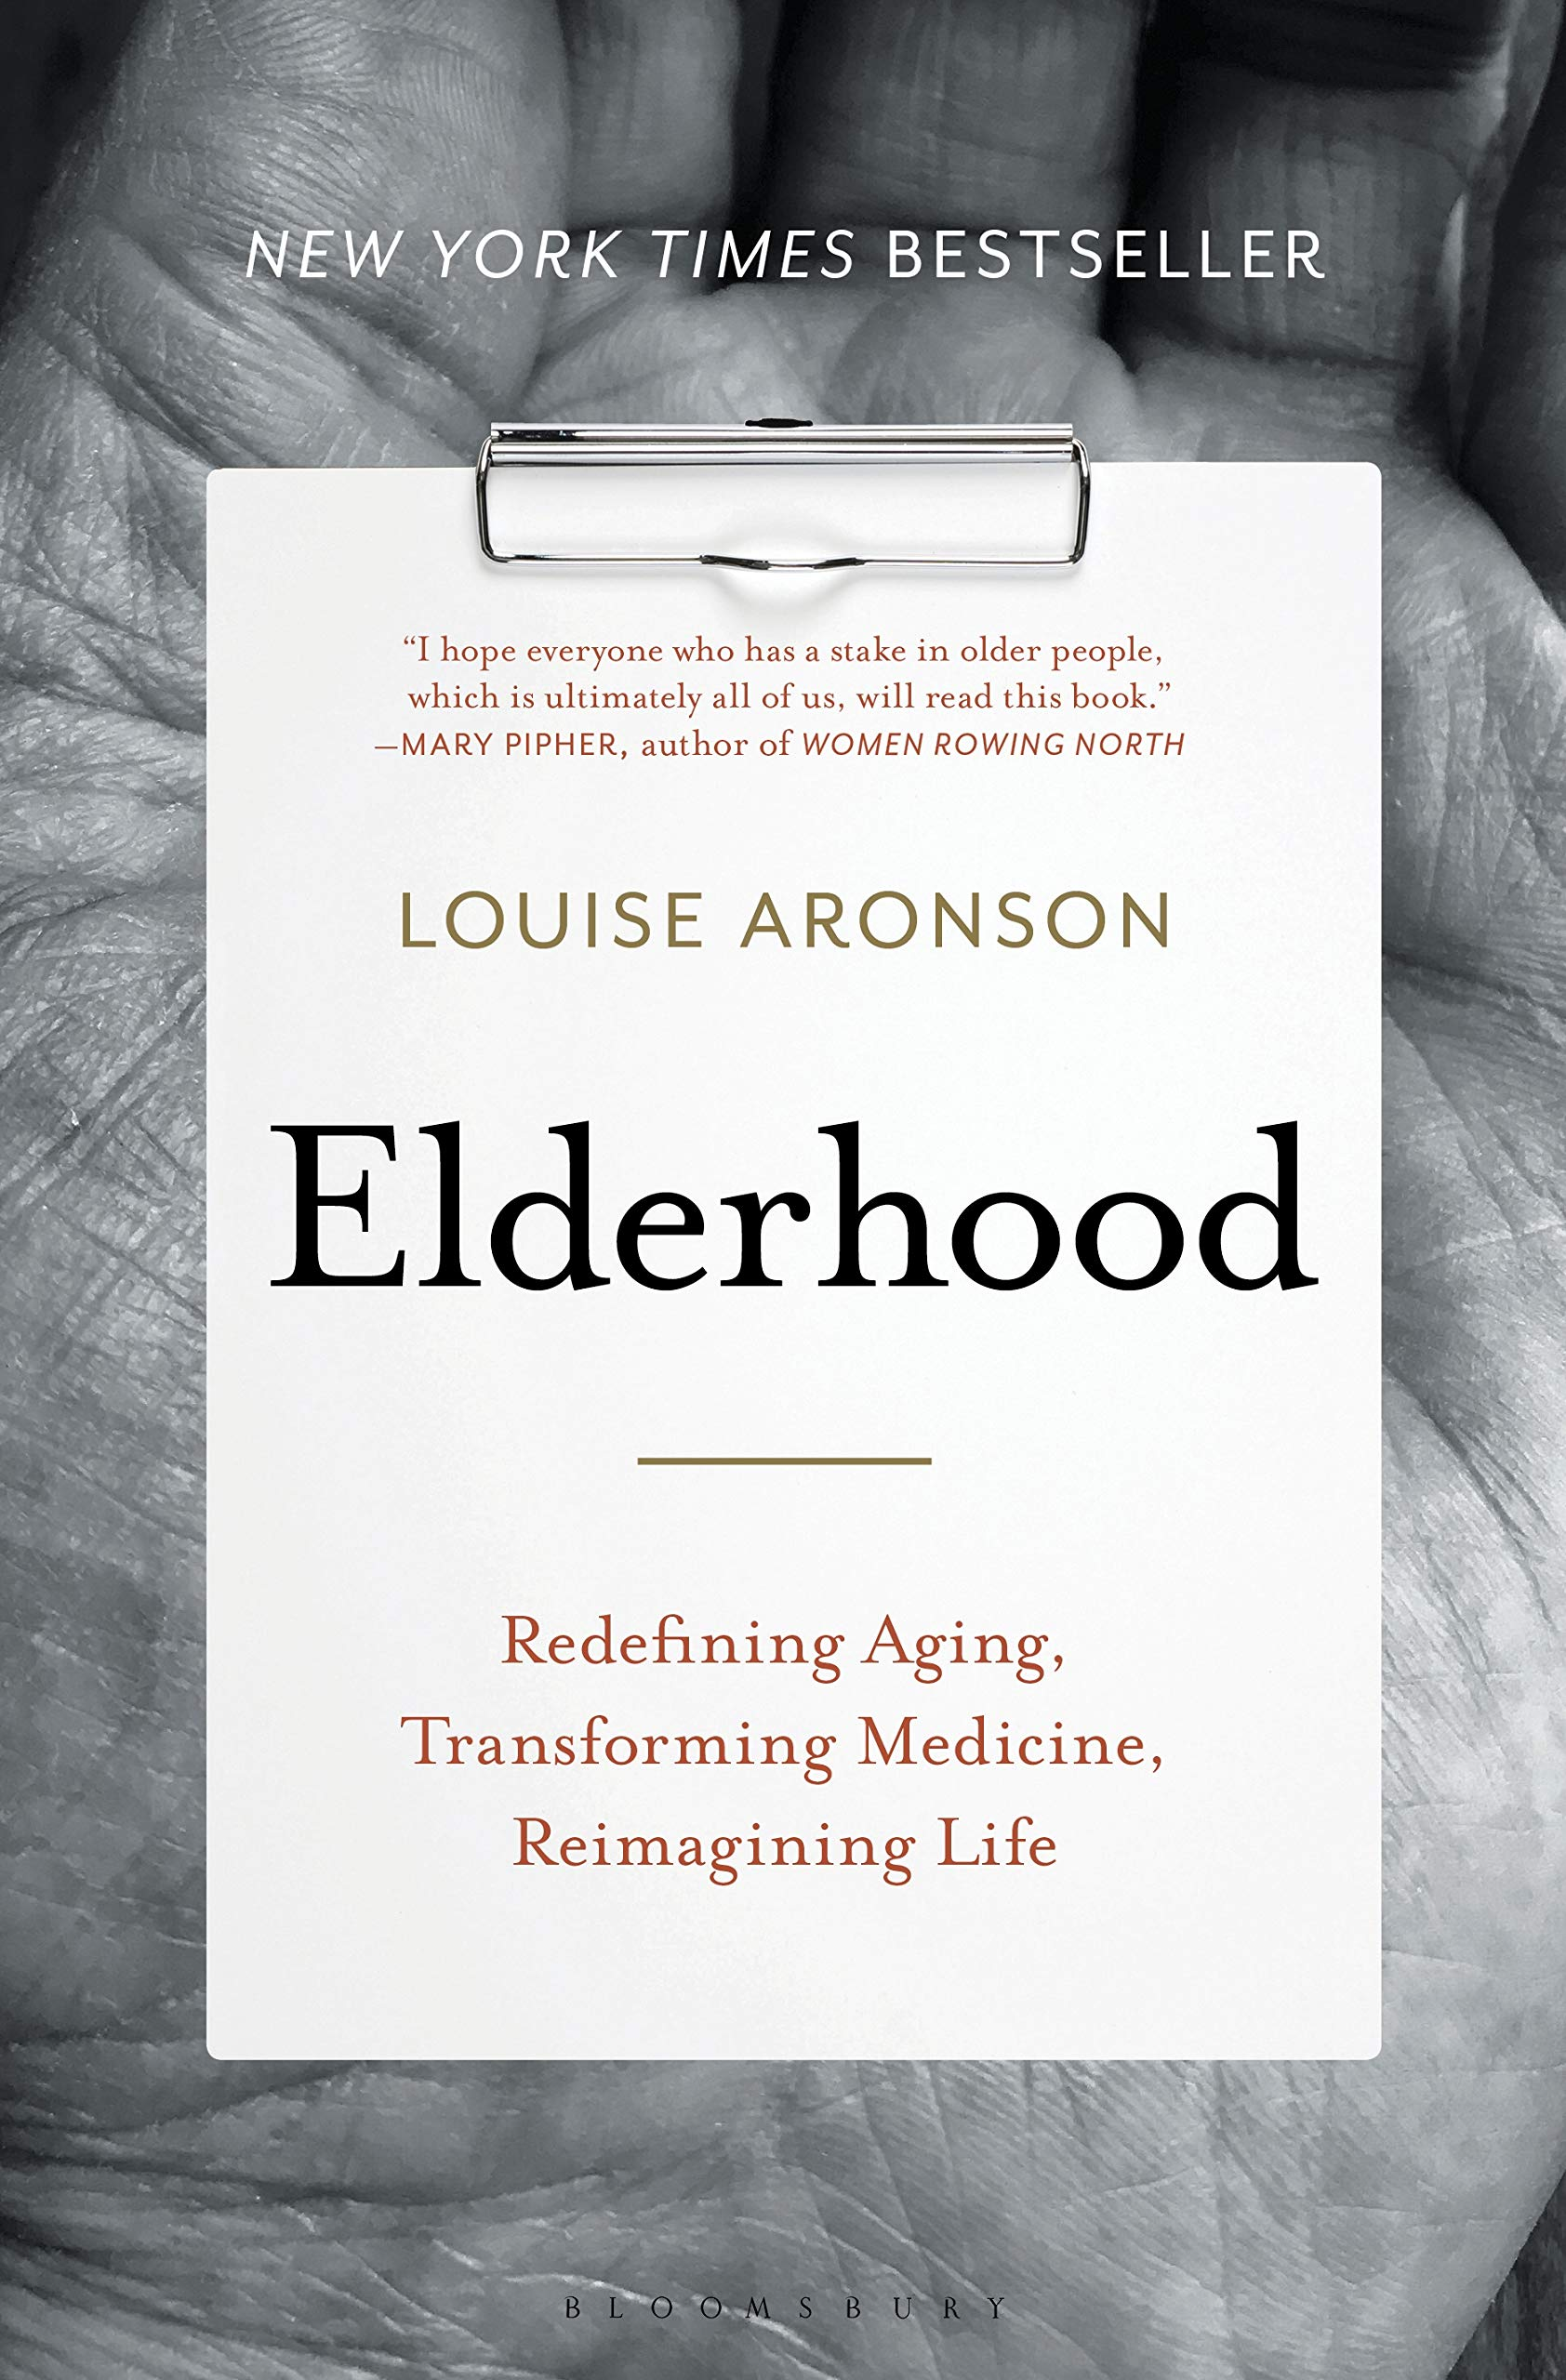 Book cover image of a palm in black and white. Author: Louise Aronson, Title: Elderhood: Redefining Aging, Transforming Medicine, Reimagining Life